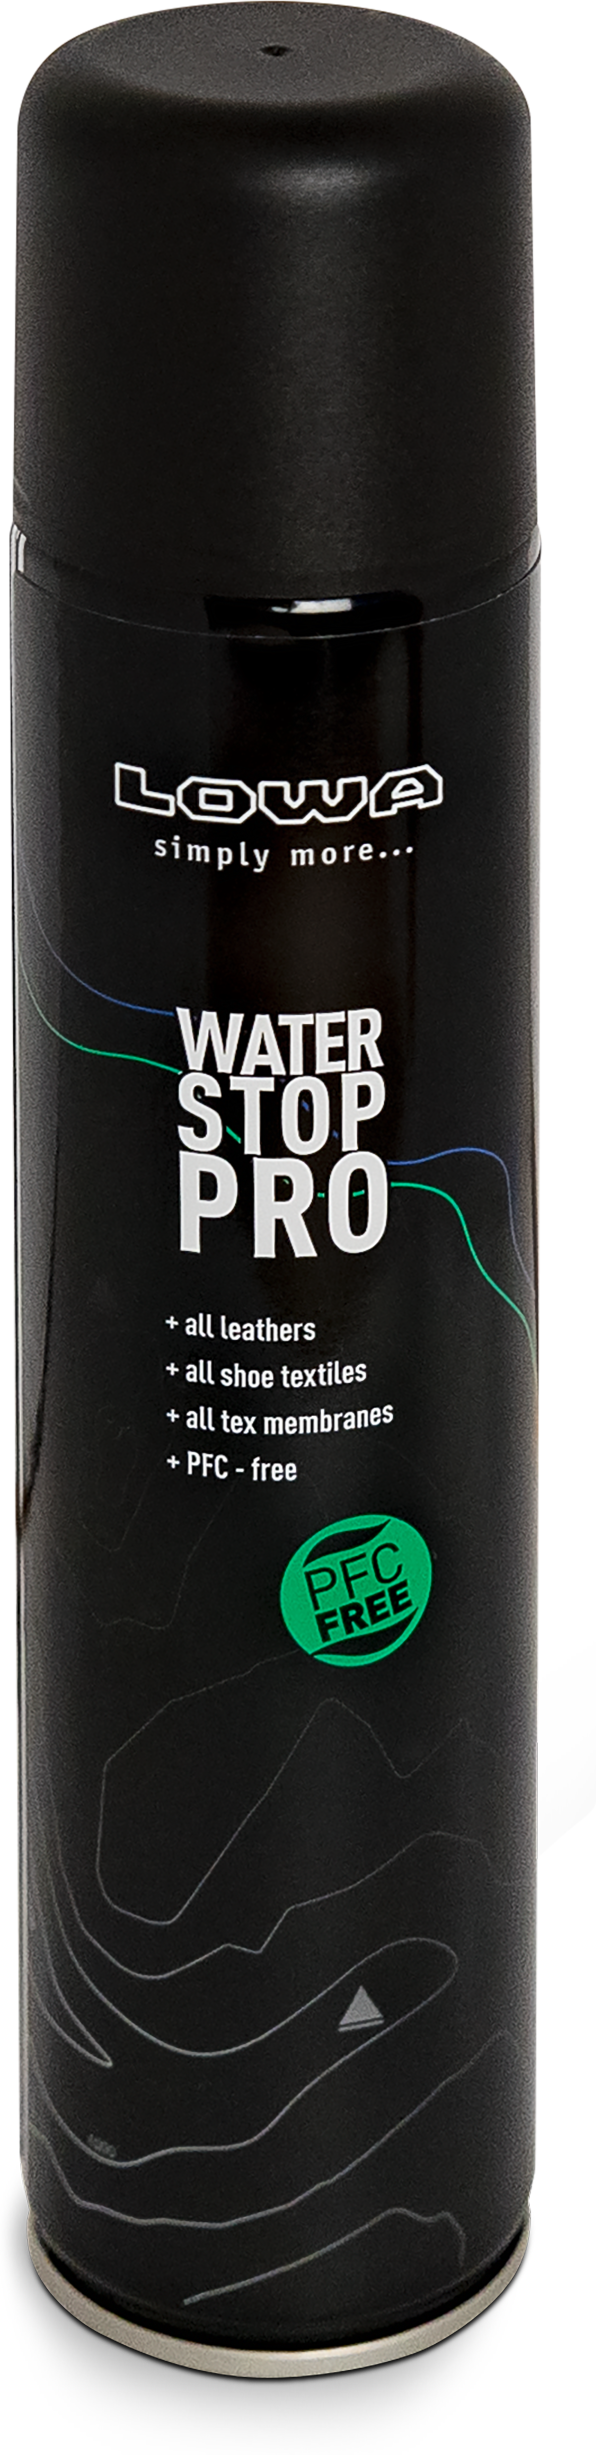 WATER STOP PRO 300 ml